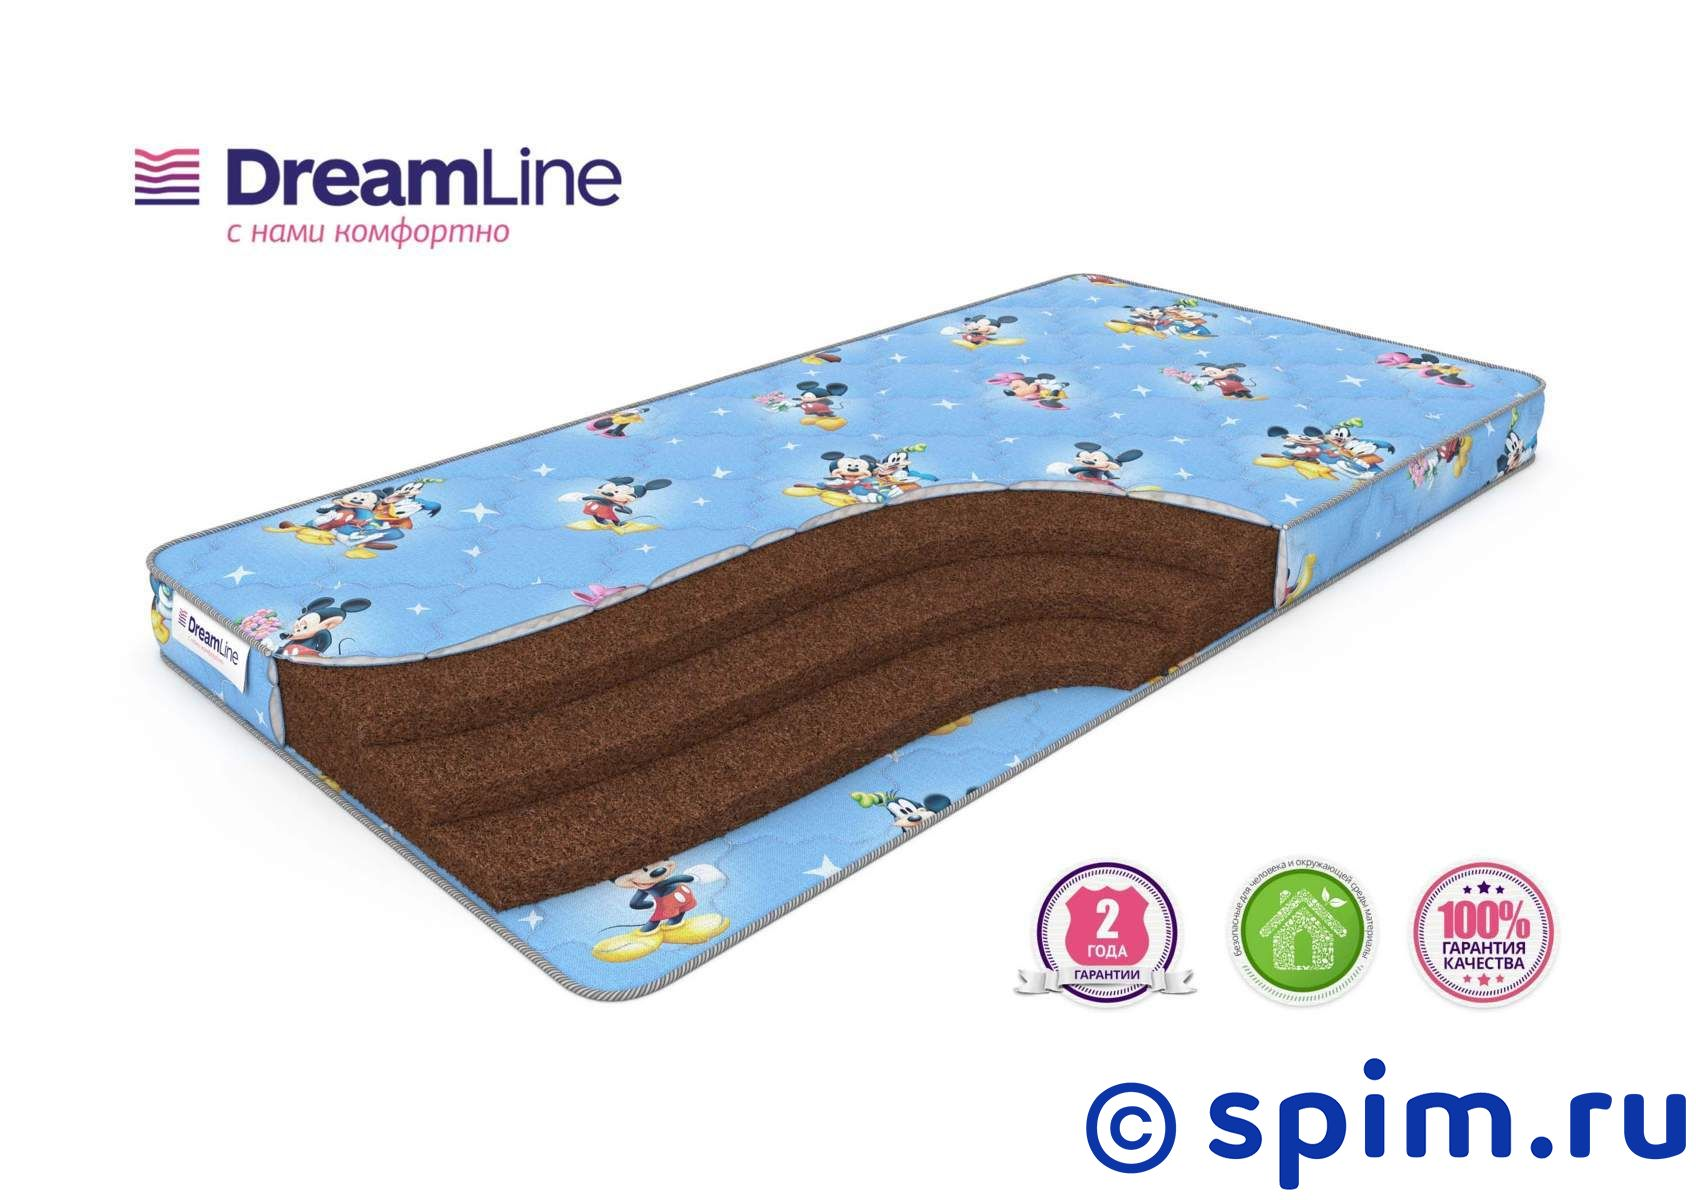 Детский матрас DreamLine Baby Dream 9 80х200 см матрас dreamline memory dream s 1000 140x195